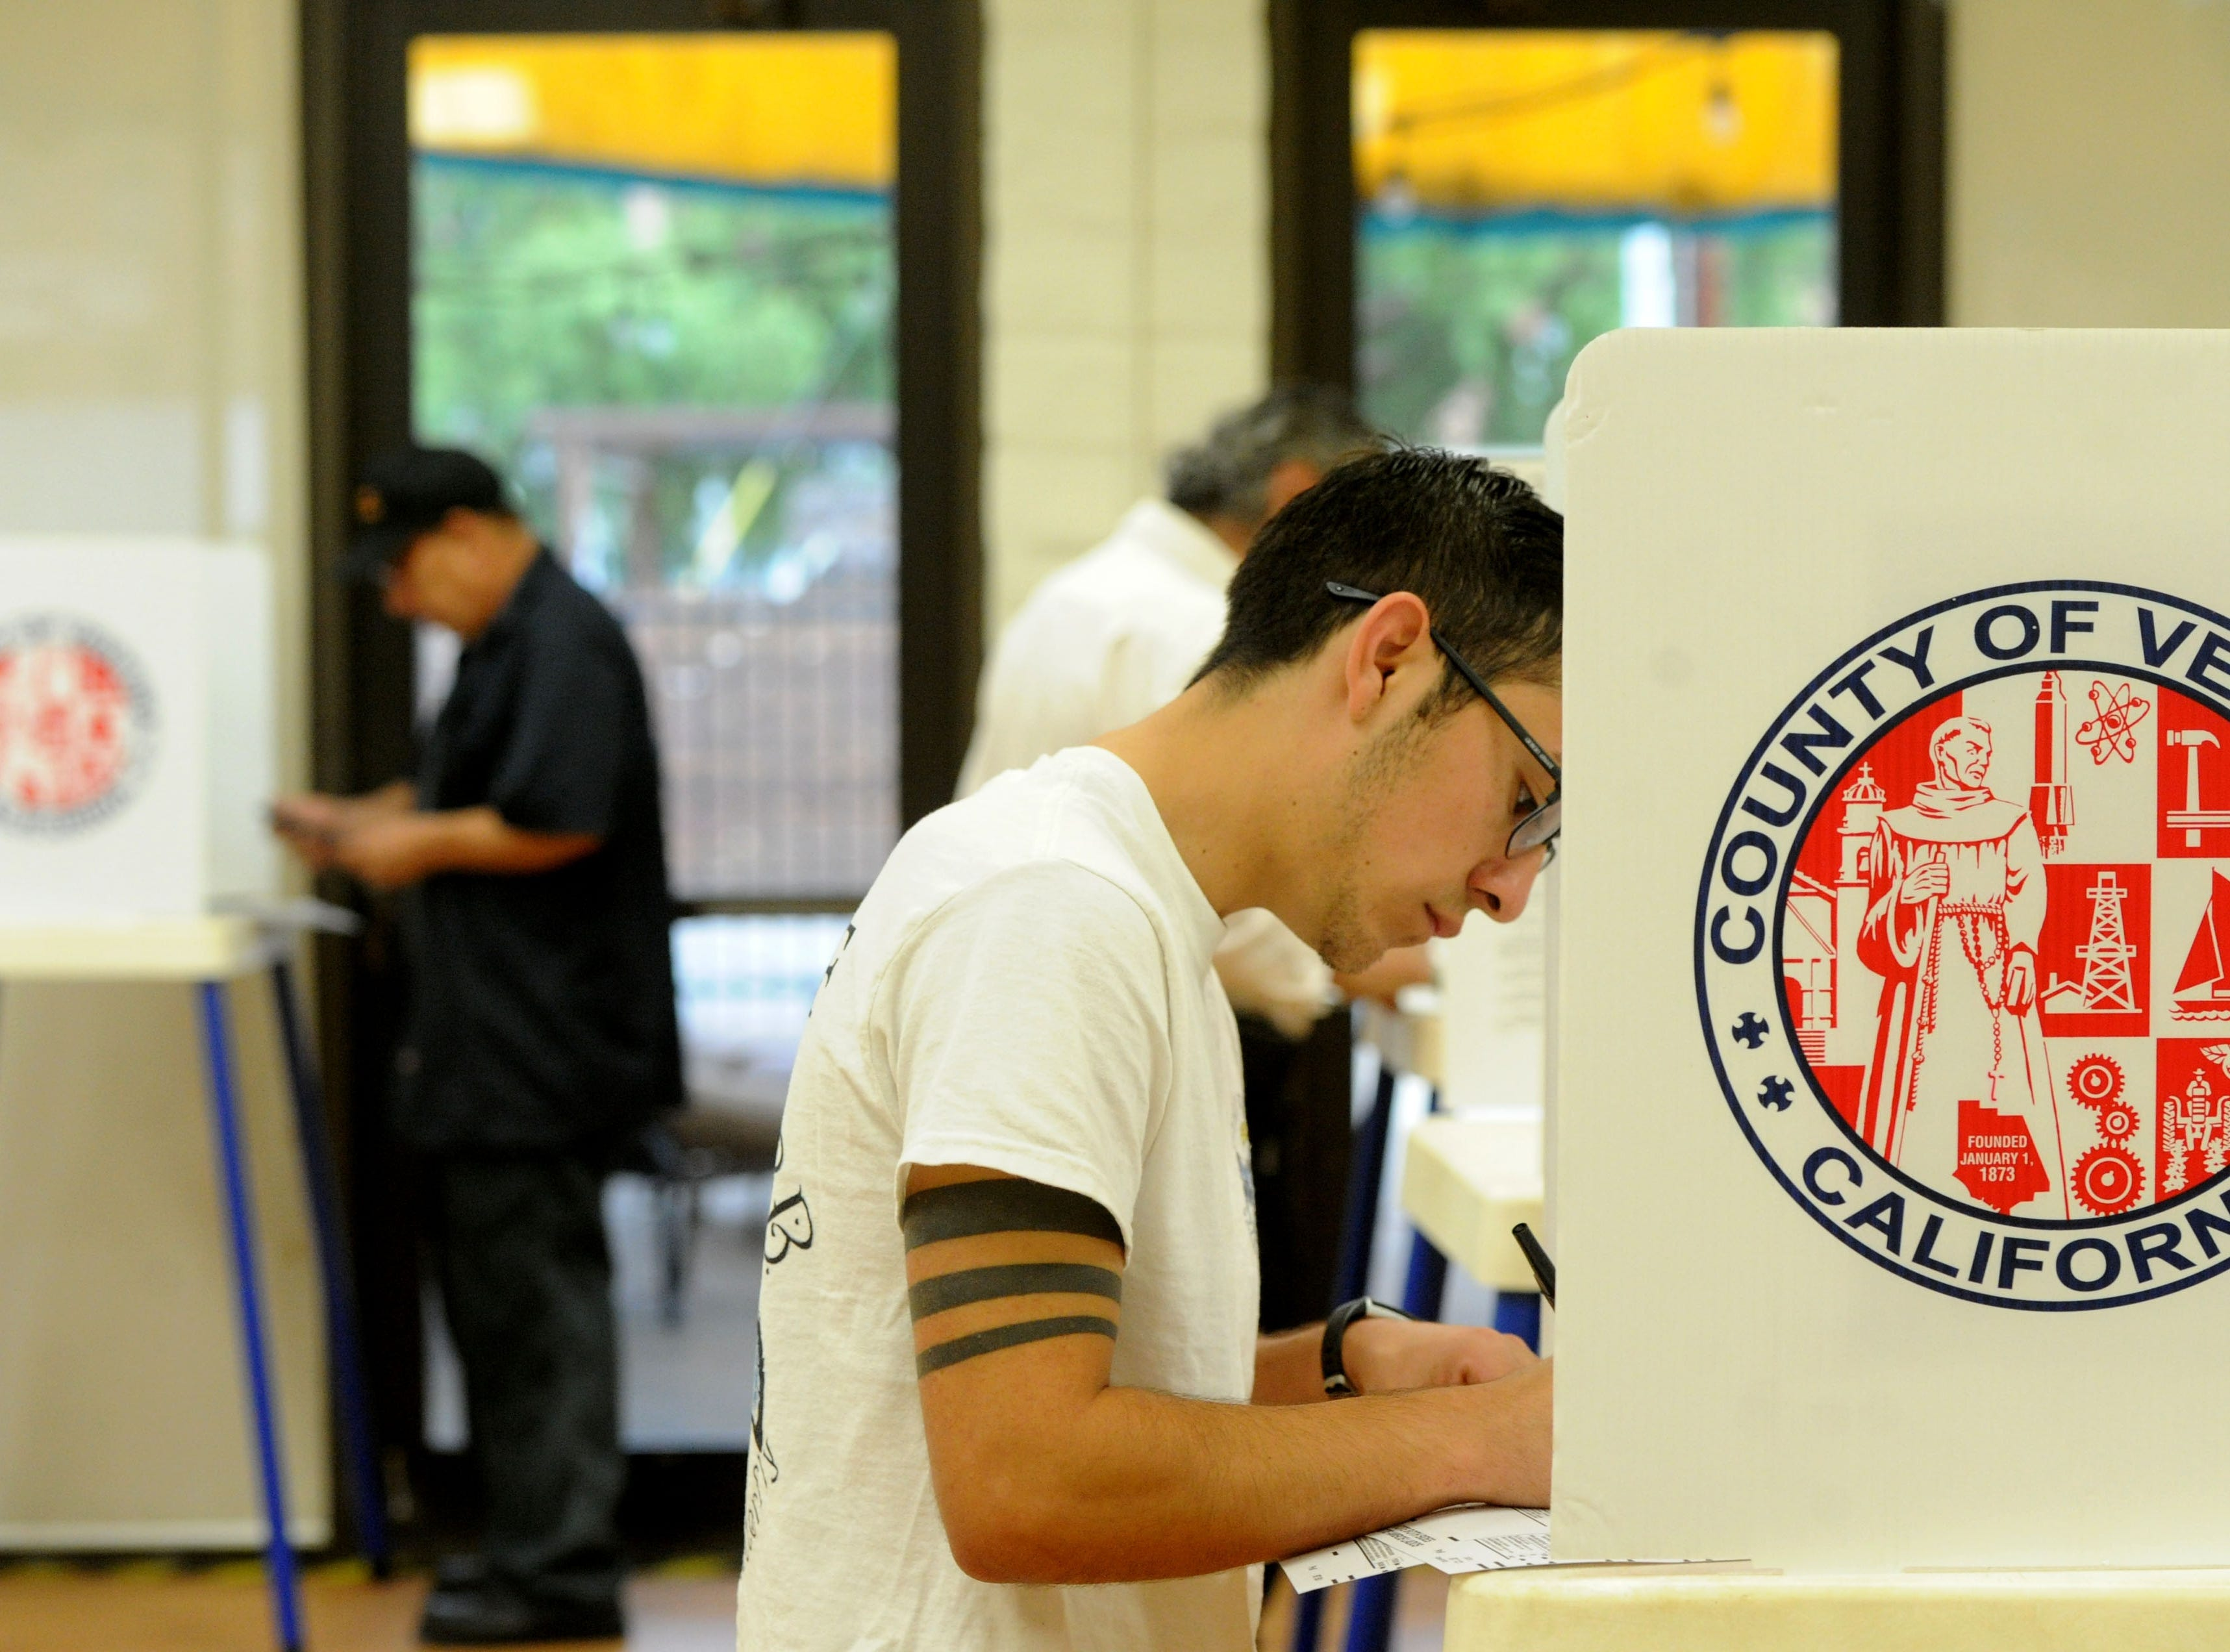 Cristian Barba votes Tuesday morning at the Ventura Avenue Adult Center. The center had a line of about 20 people.